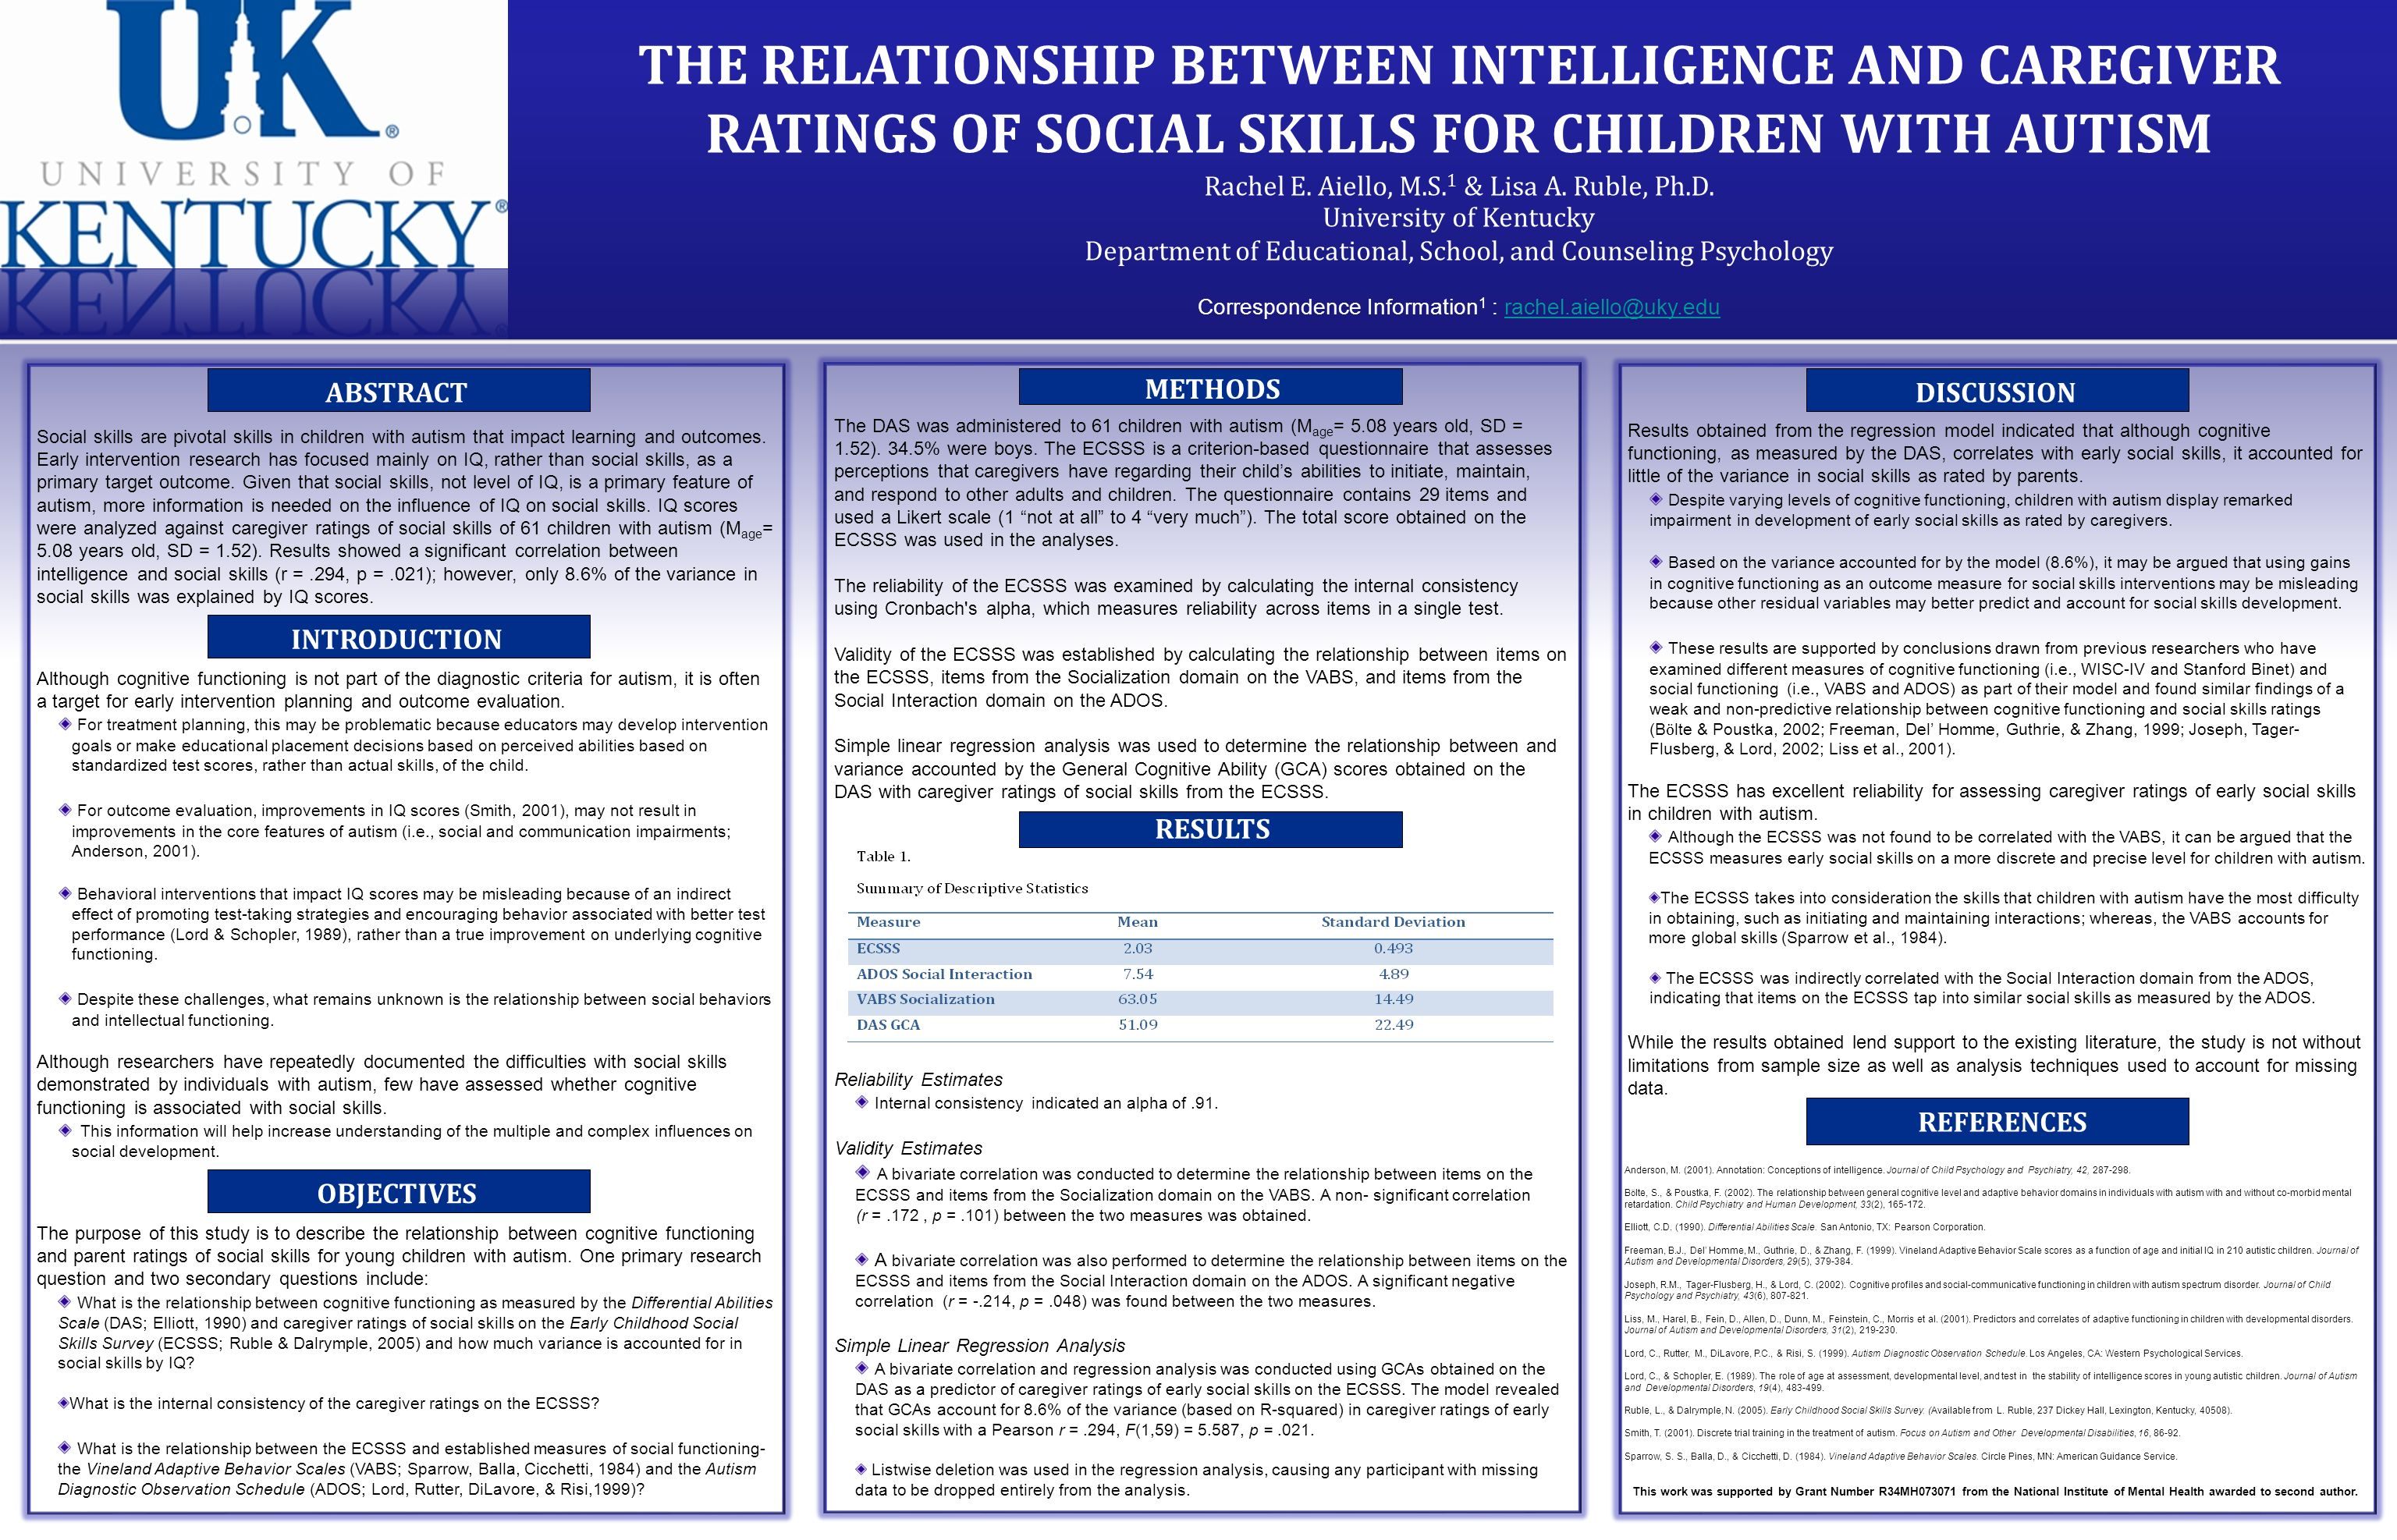 THE RELATIONSHIP BETWEEN INTELLIGENCE AND CAREGIVER RATINGS OF SOCIAL SKILLS FOR CHILDREN WITH AUTISM Rachel E.